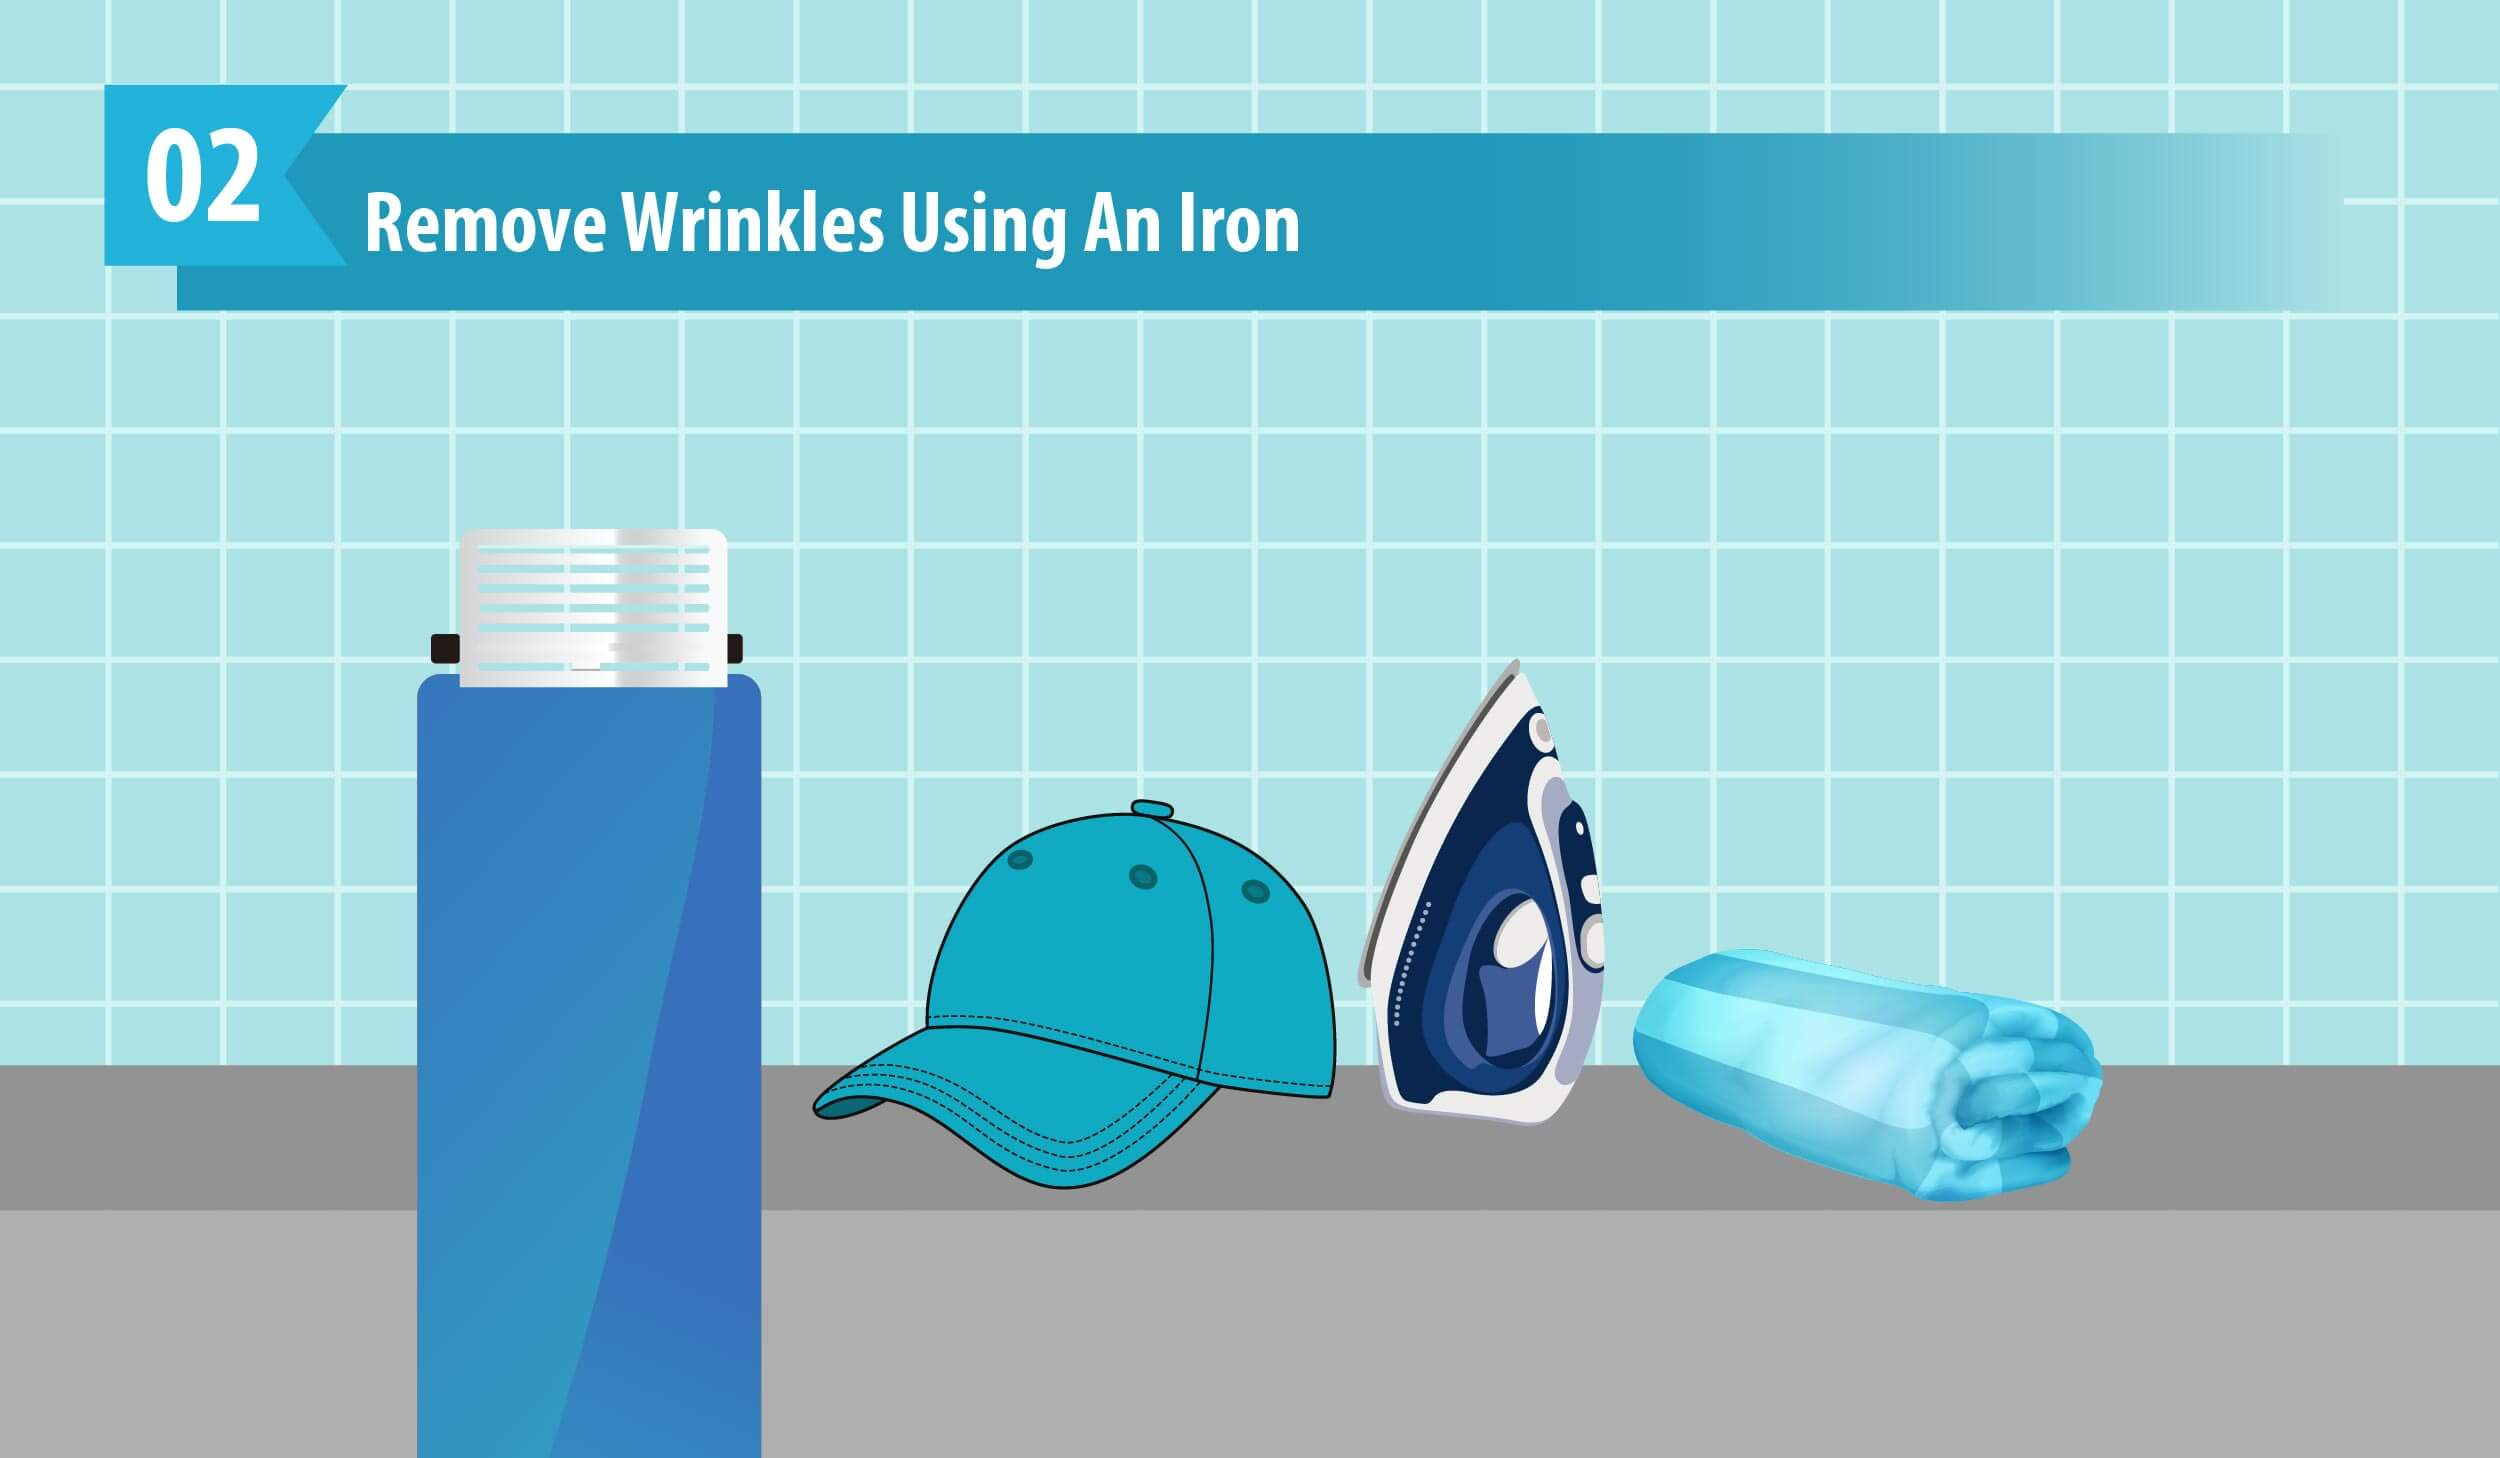 Remove Wrinkles Using An Iron